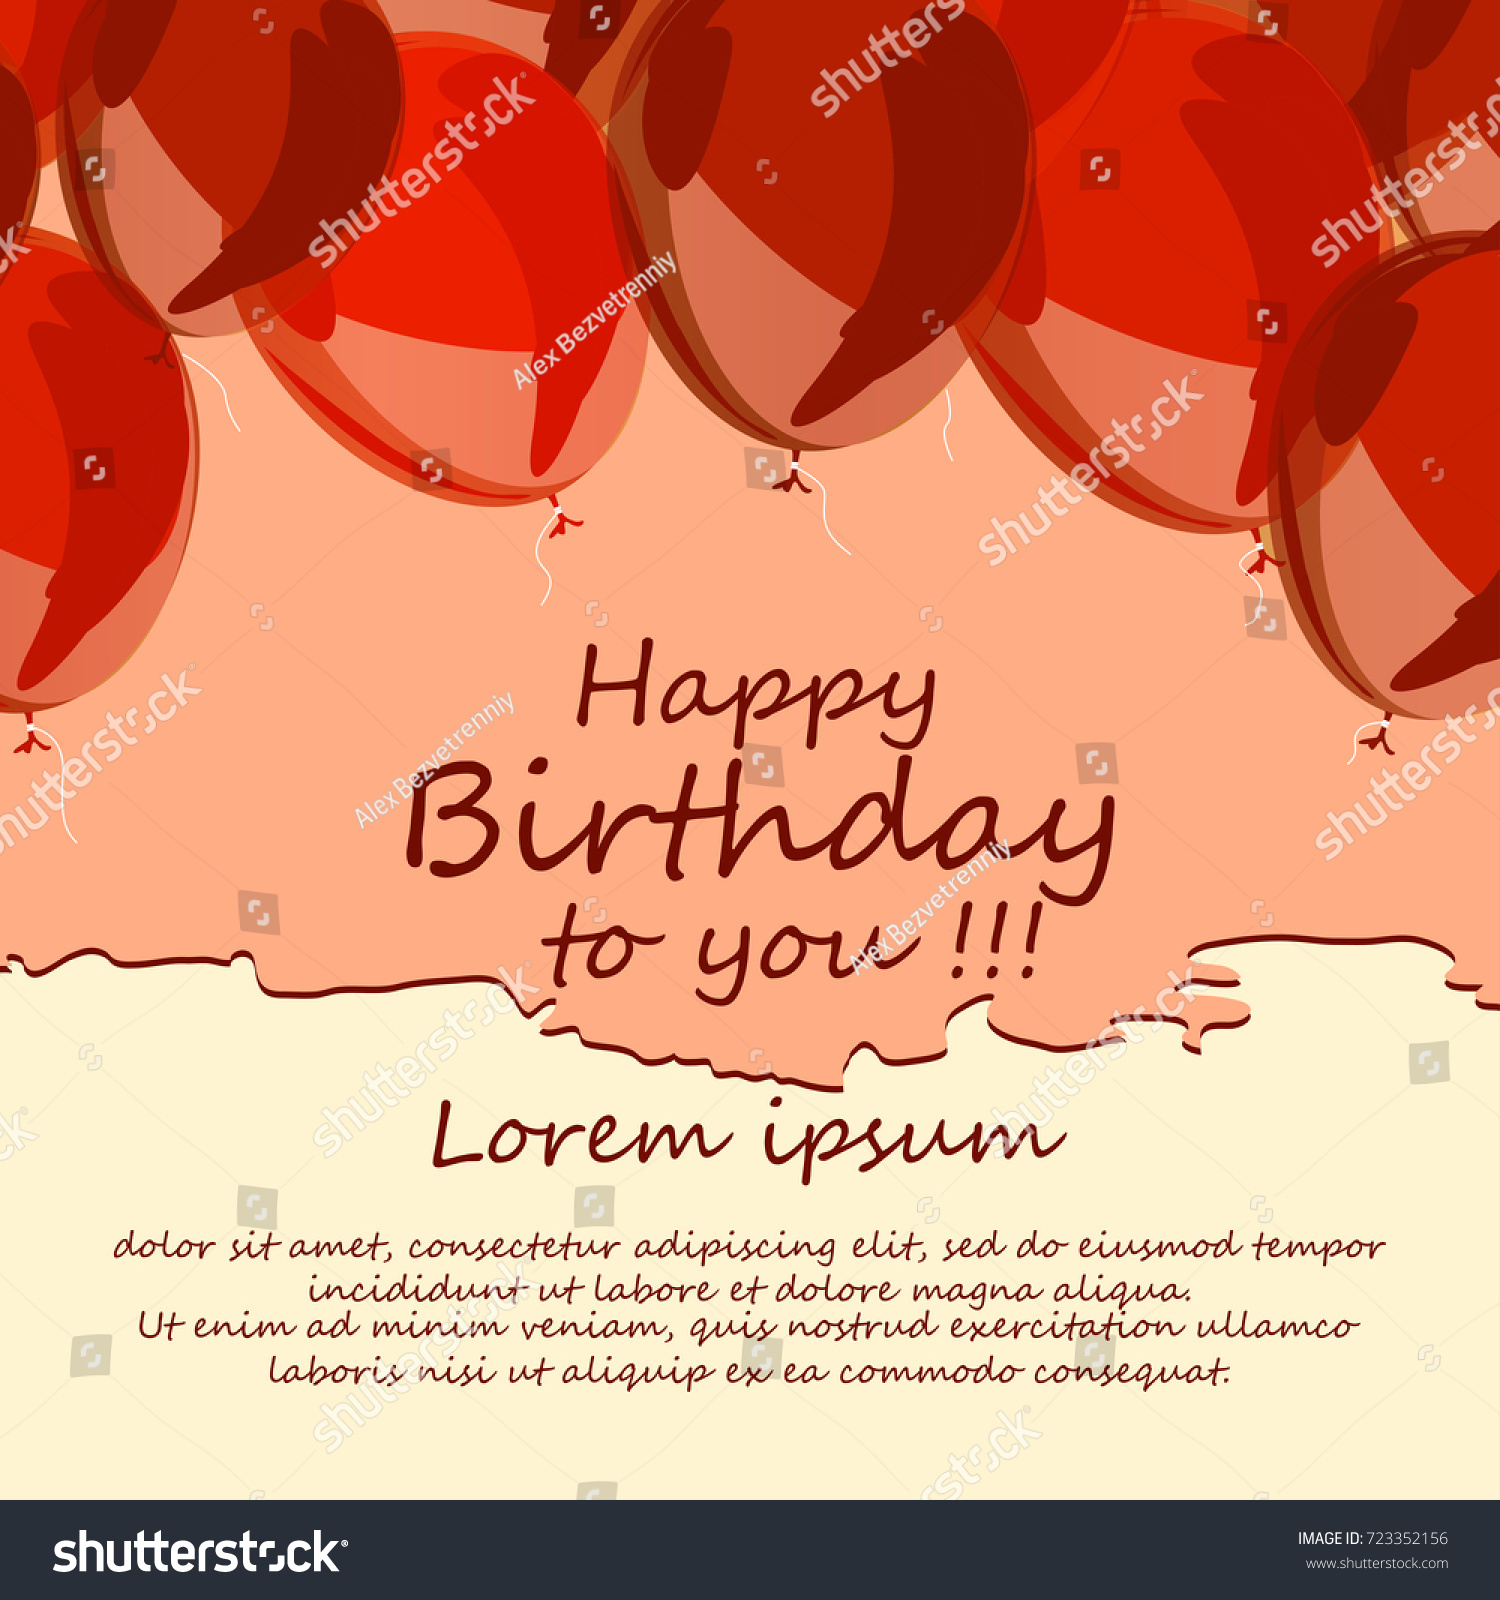 Birthday Card Greetings Image collections Free Birthday Cards